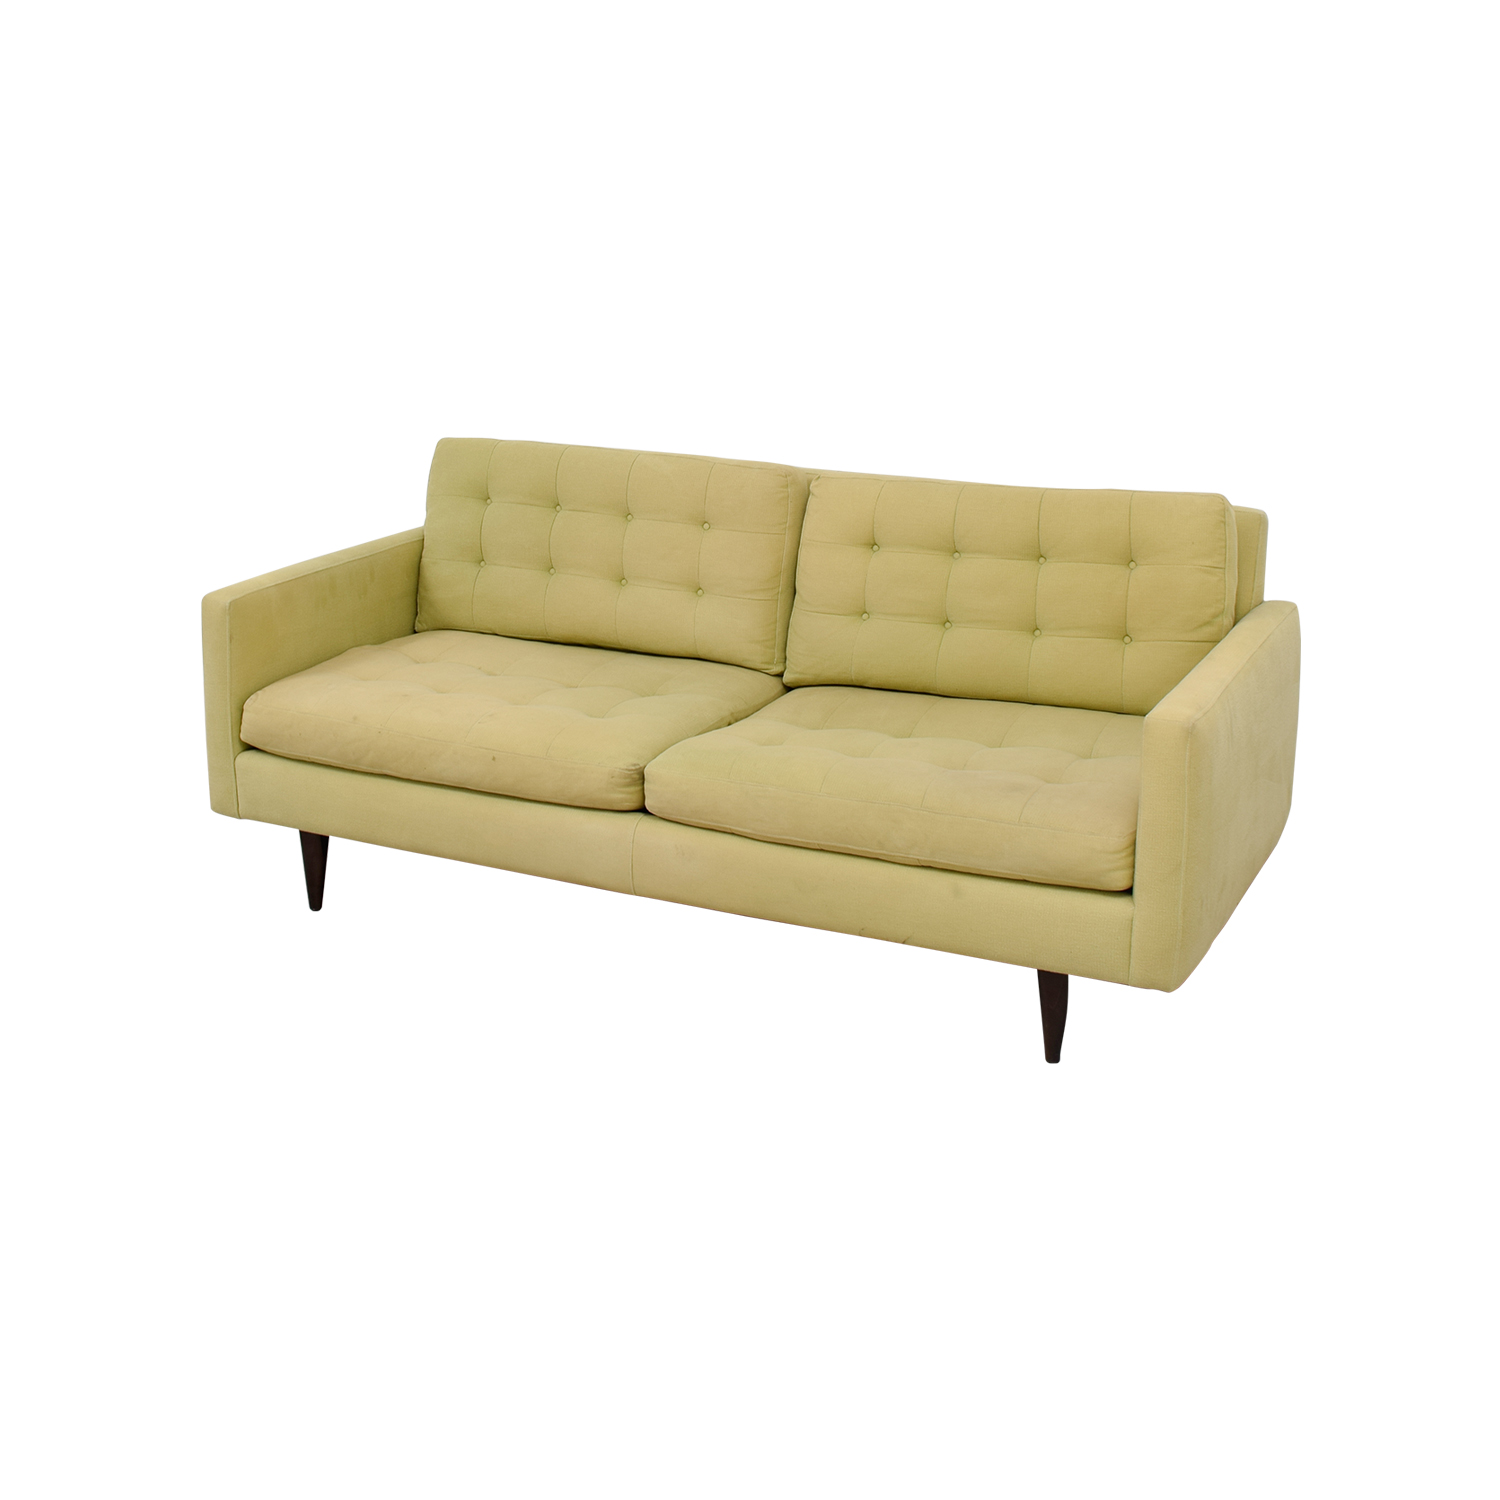 crate and barrel shelter sofa dimensions best memory foam topper for bed 77 off petrie pale green